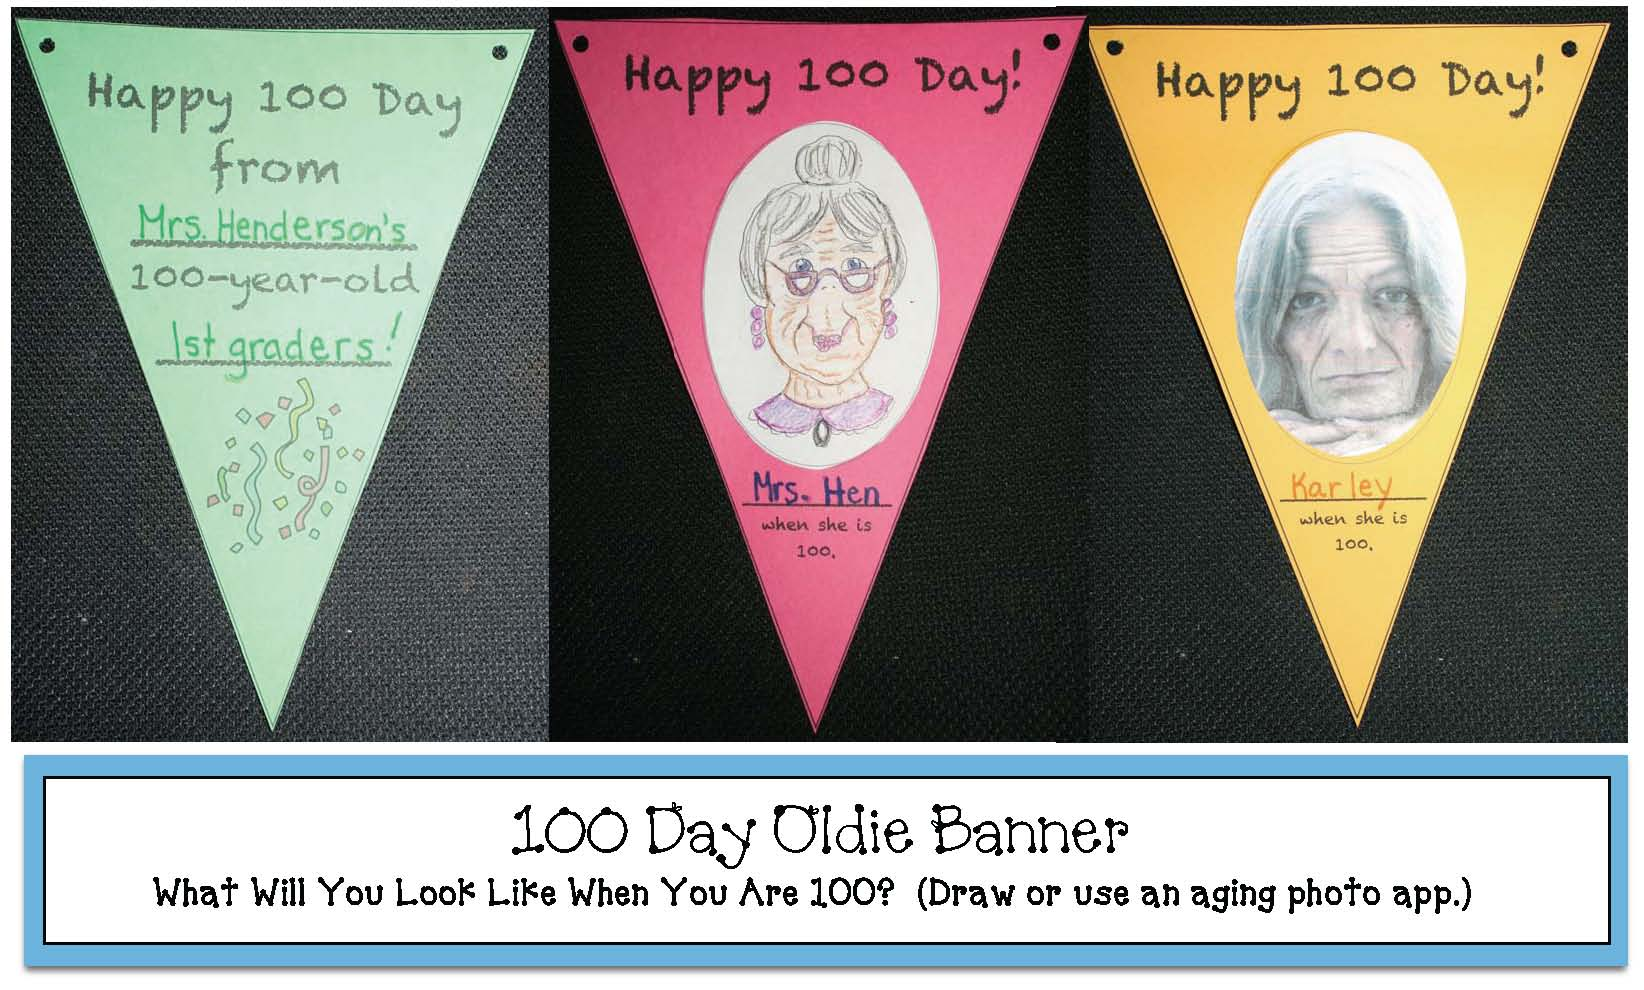 100 day activities, 100 day coloring pages, ideas for 100 day, 100 day crafts, 100 day bulletin boards, 100 day banners, greater than and less than activities, guesstimation activities, 100 day games, 100 day centers, aging a photo apps, when I'm 100 what will I look like, 100 day crowns, counting to 100, skip counting by 10's skip counting by 5s, activities for skip counting to 100,